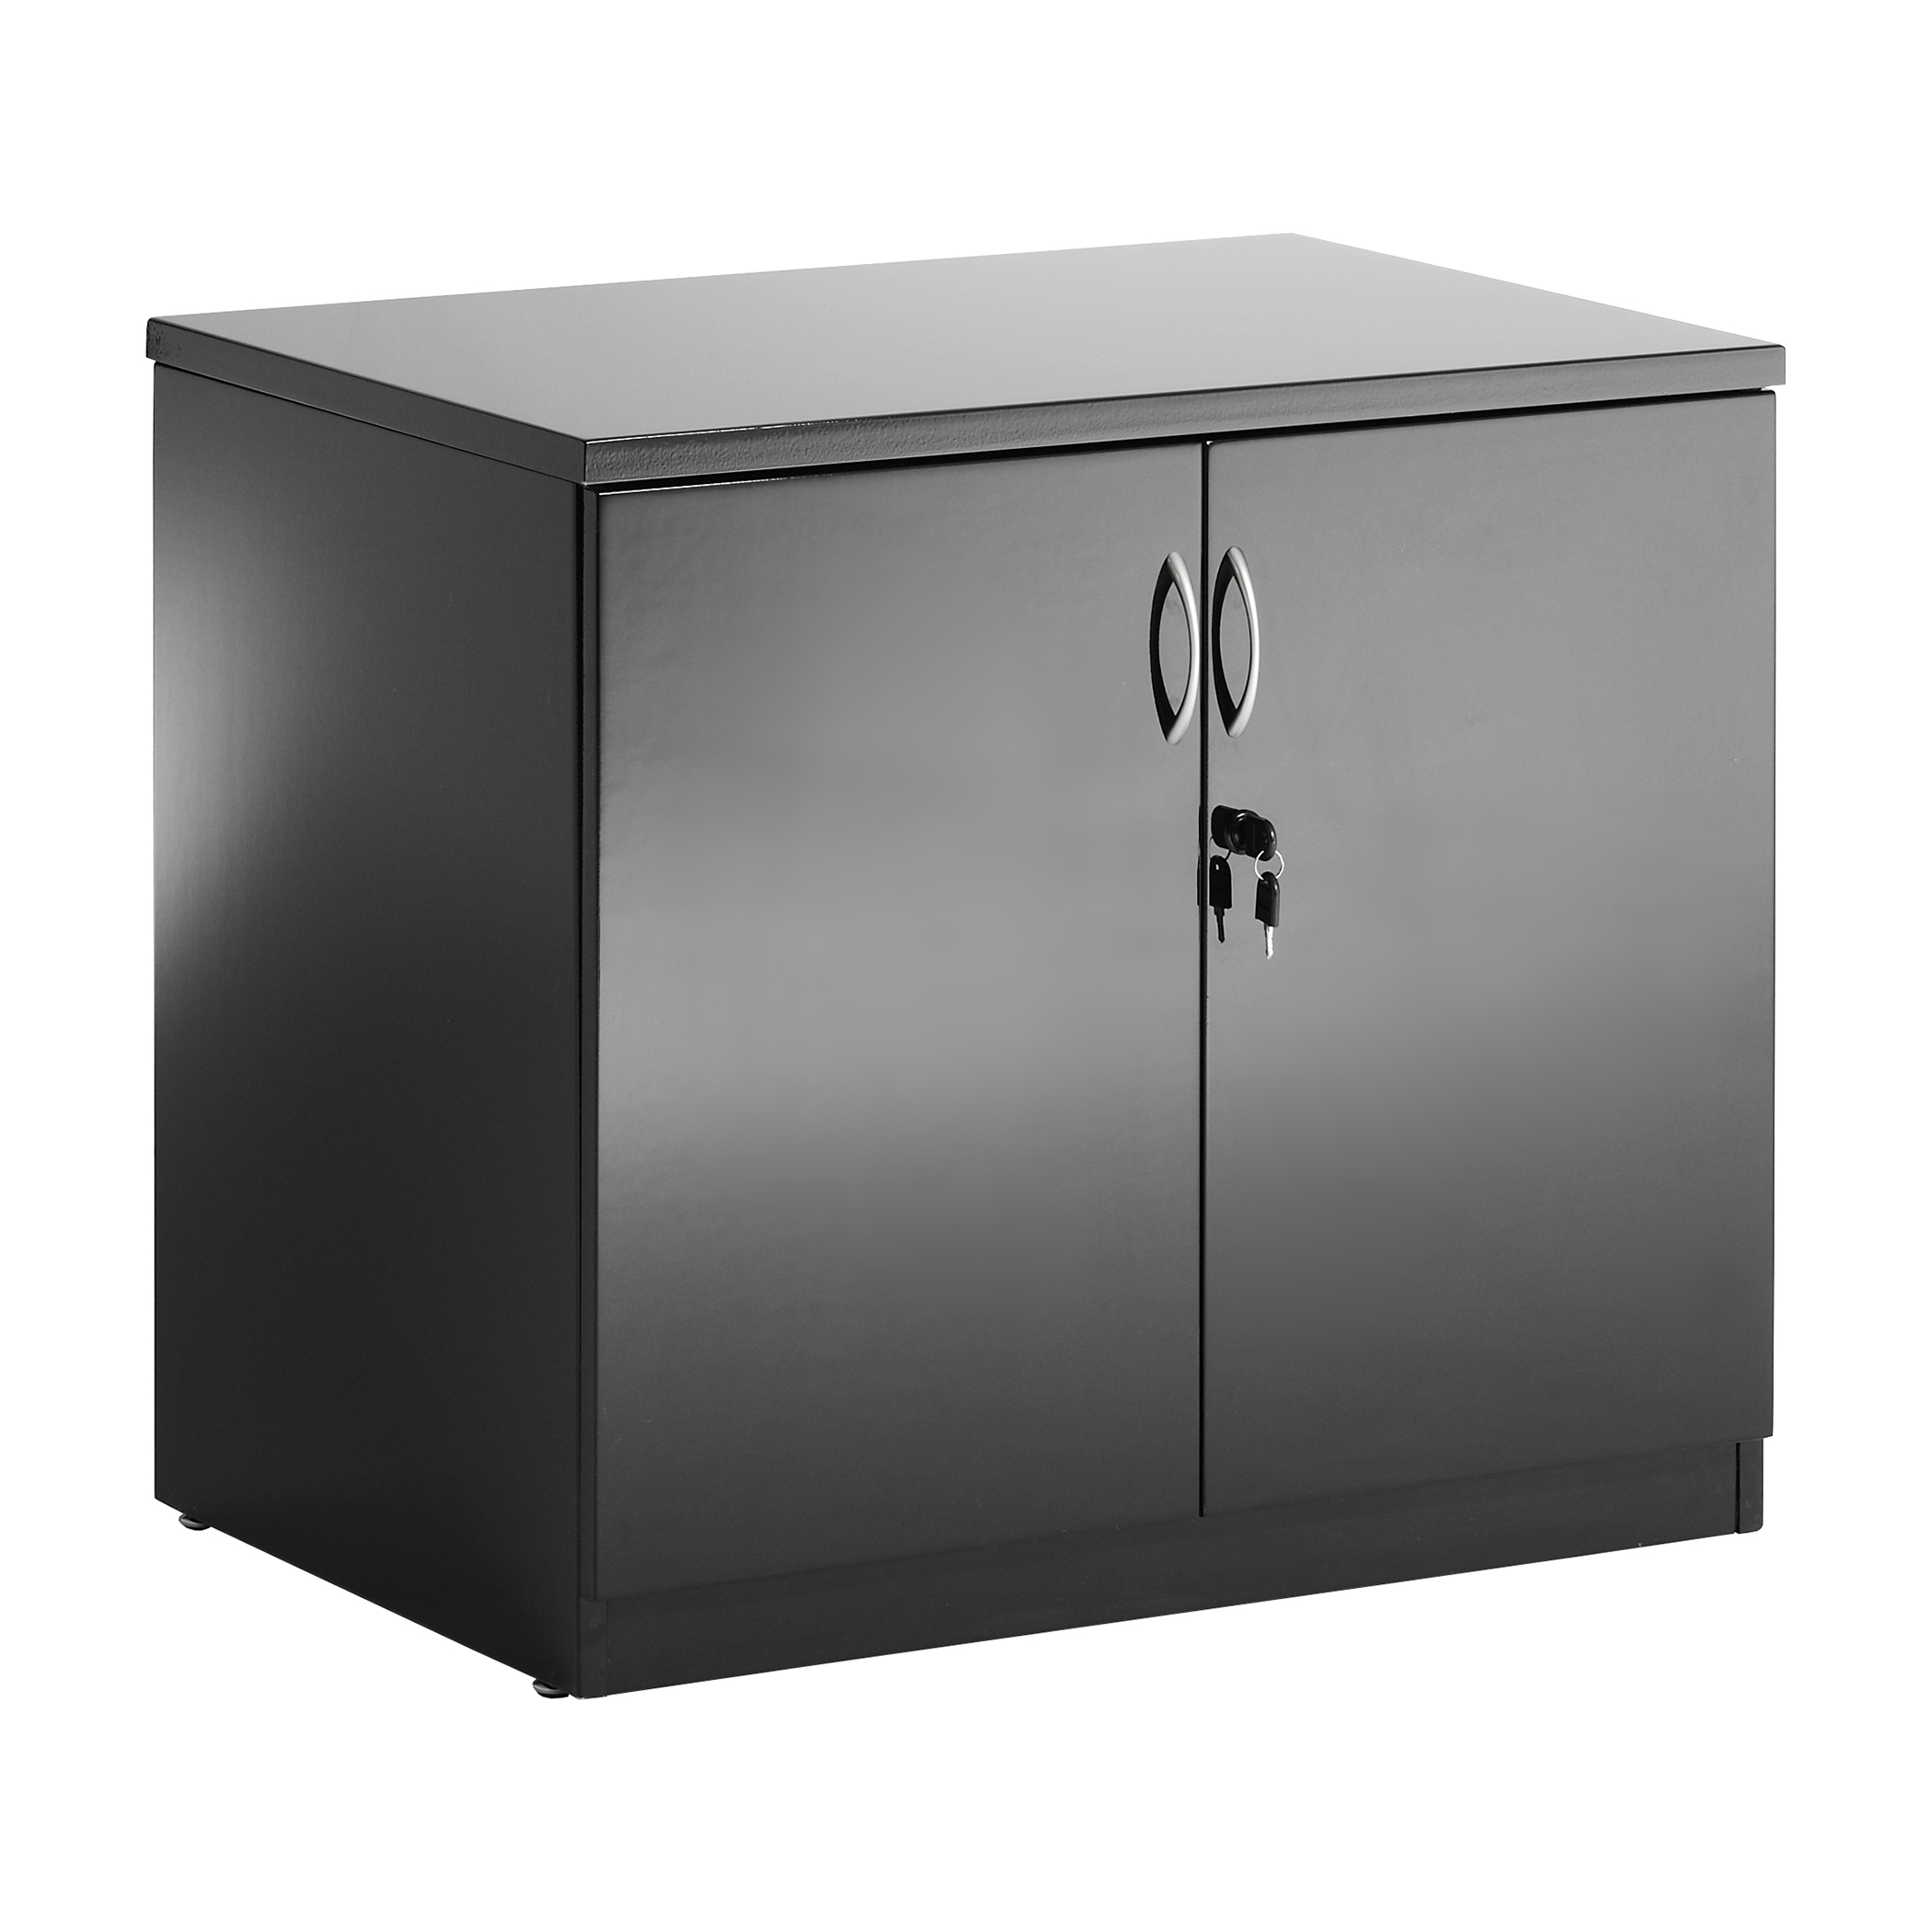 Sonix Desk High Cupboard 800x600x730mm High Gloss Black Ref I000733